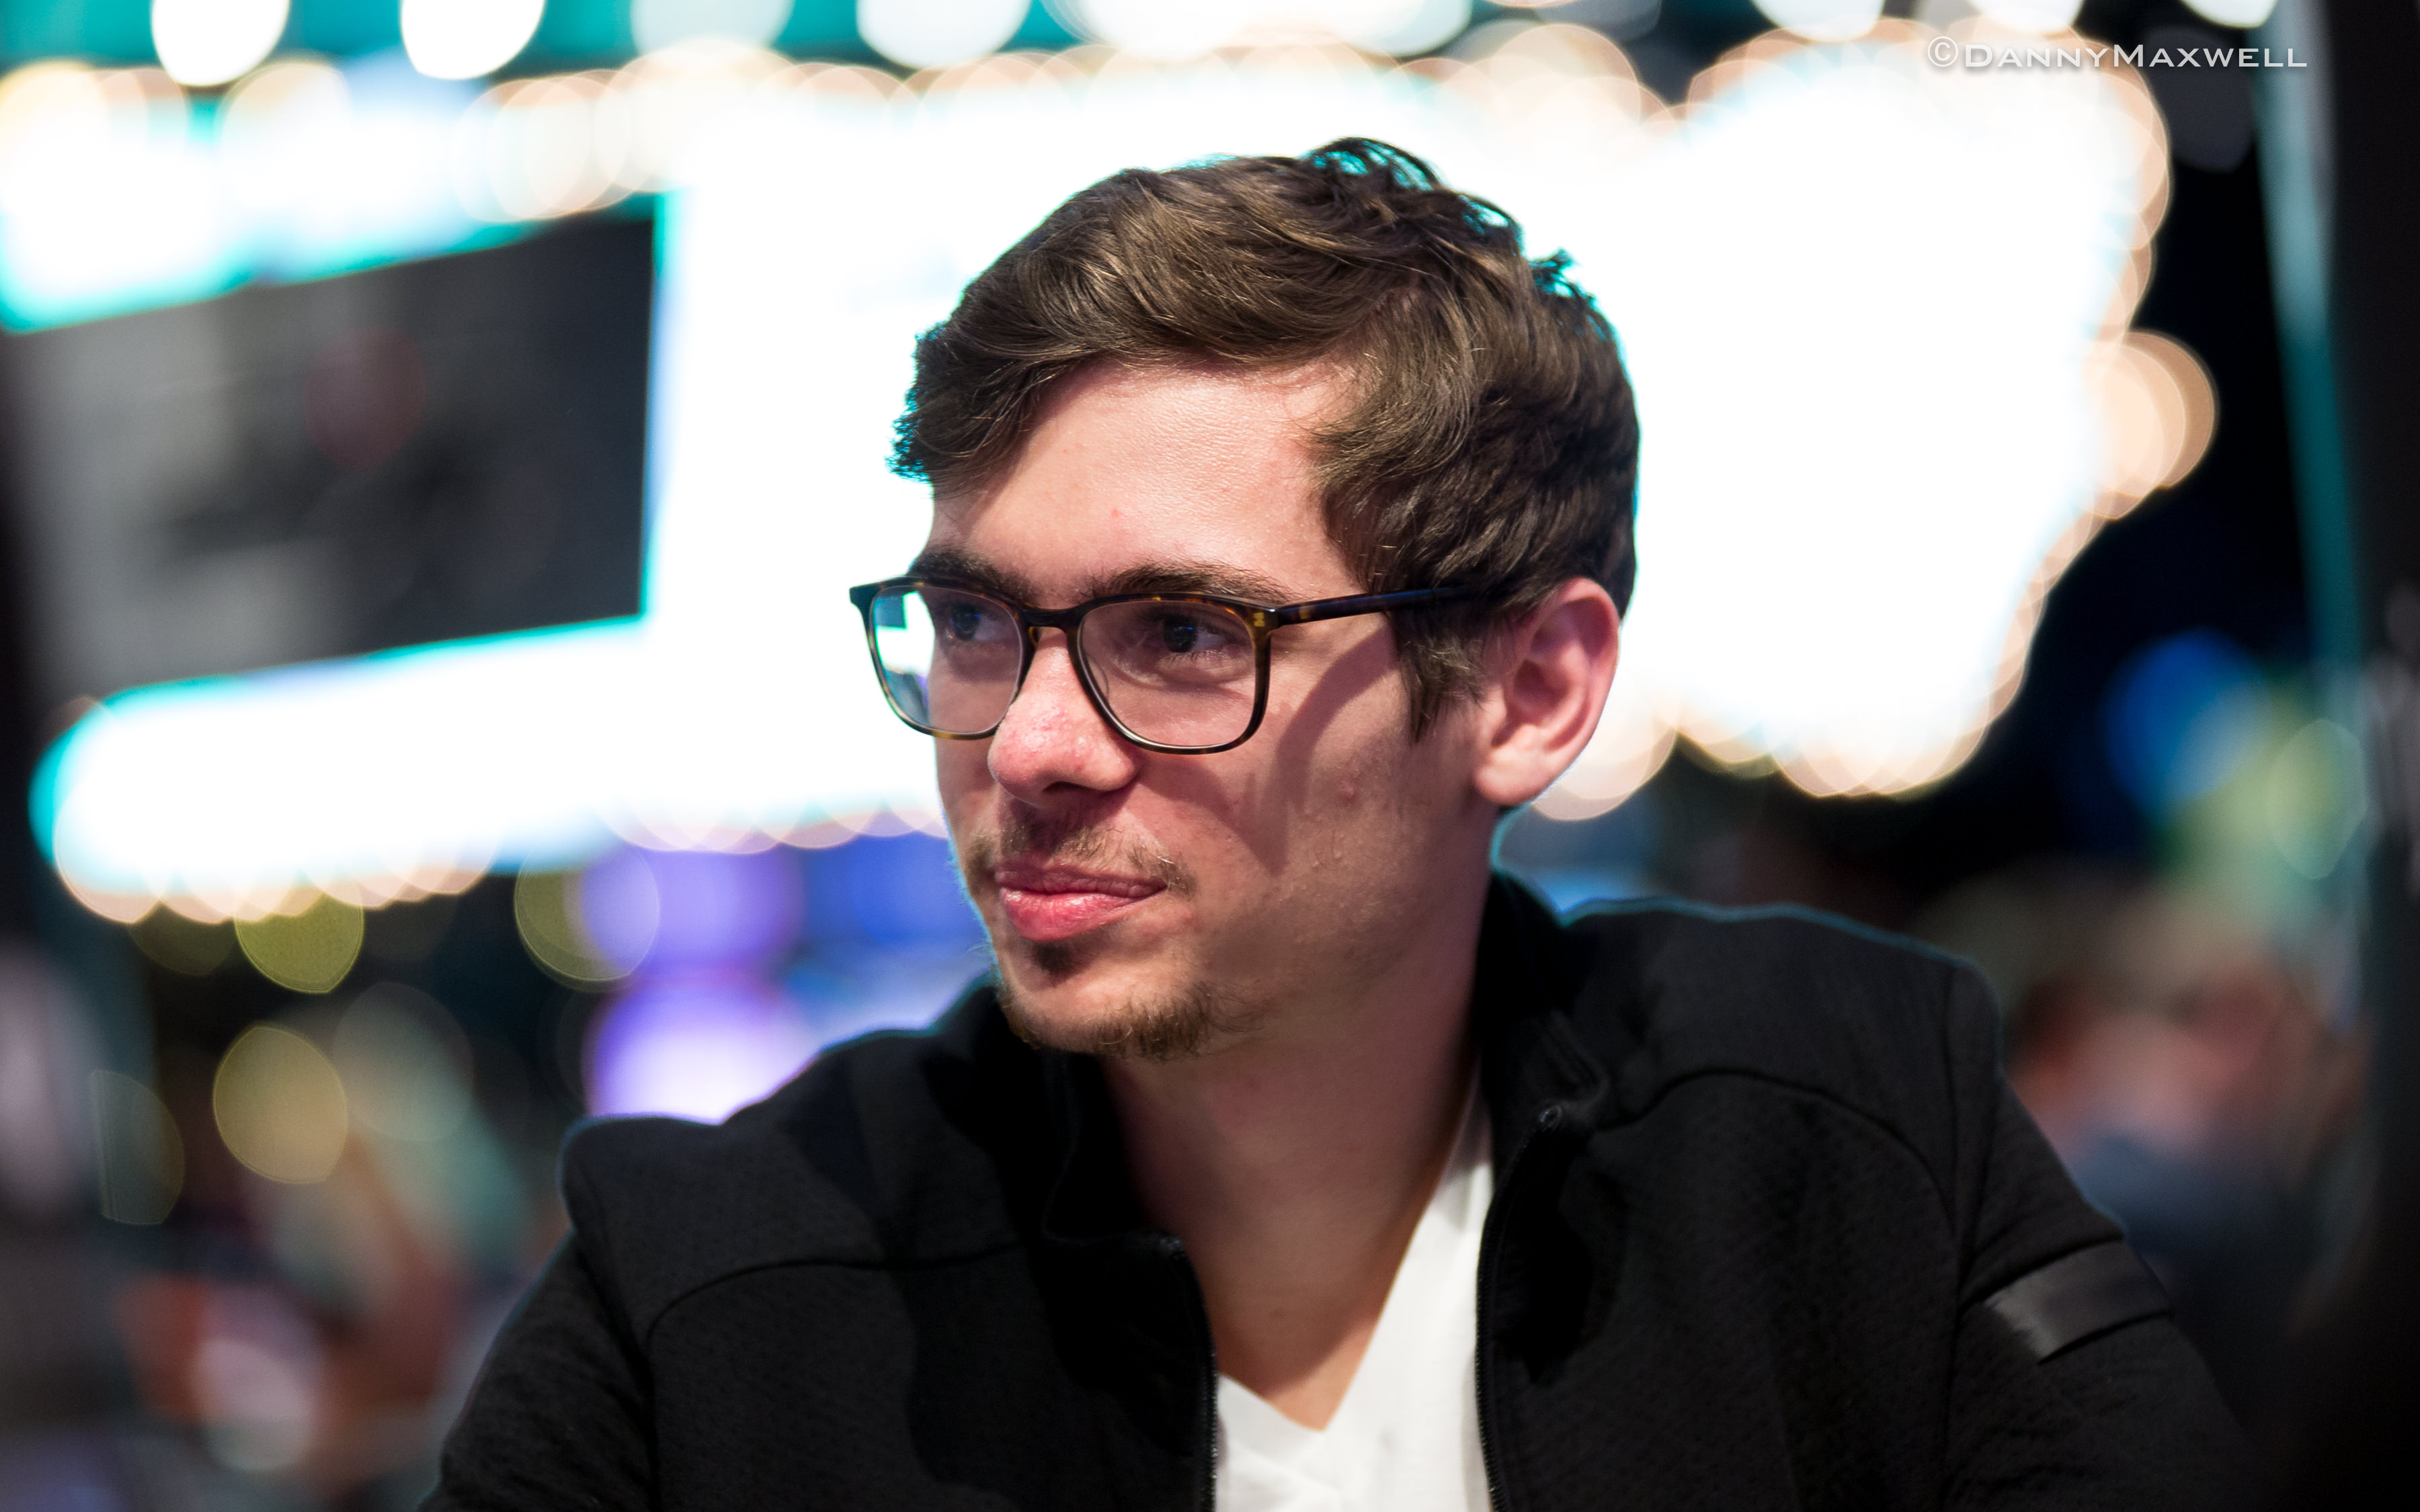 Sontheimer Leads Aussie Millions 0K Challenge, 'Recreational' Player Holz in Second 102